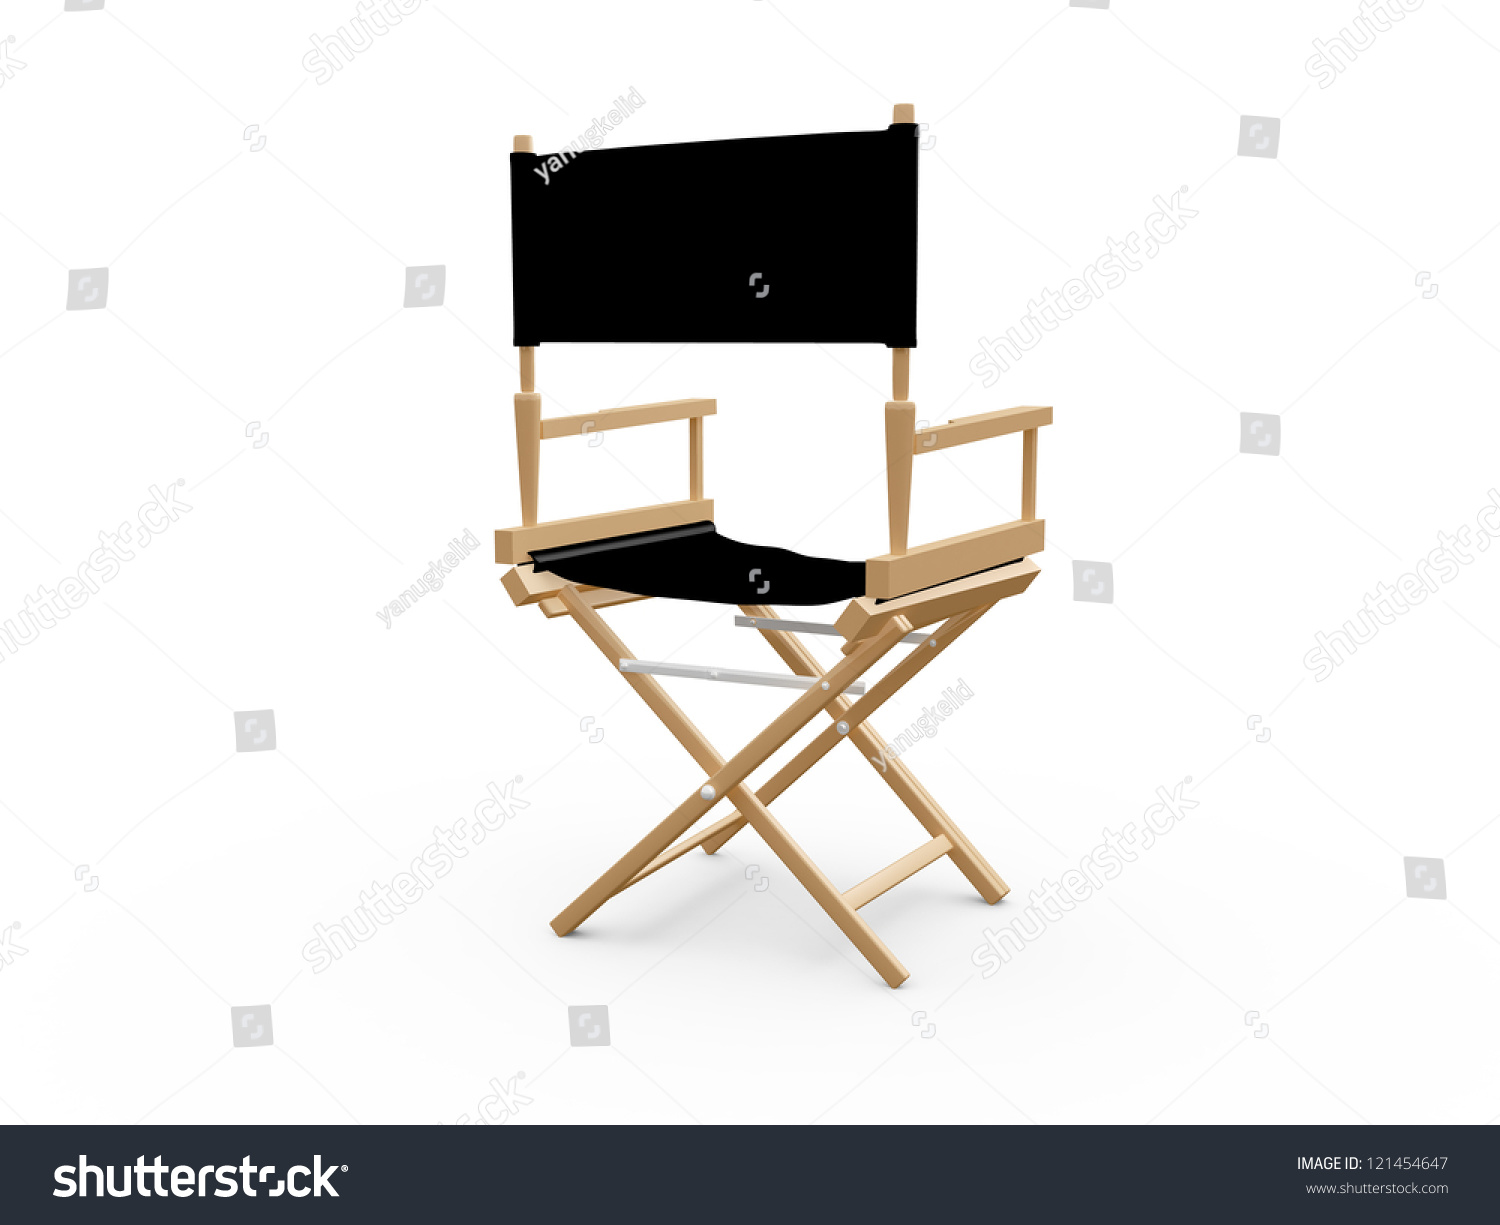 Back of director chairs - Back View Of Directors Chair In Film Industry Isolated On White Background